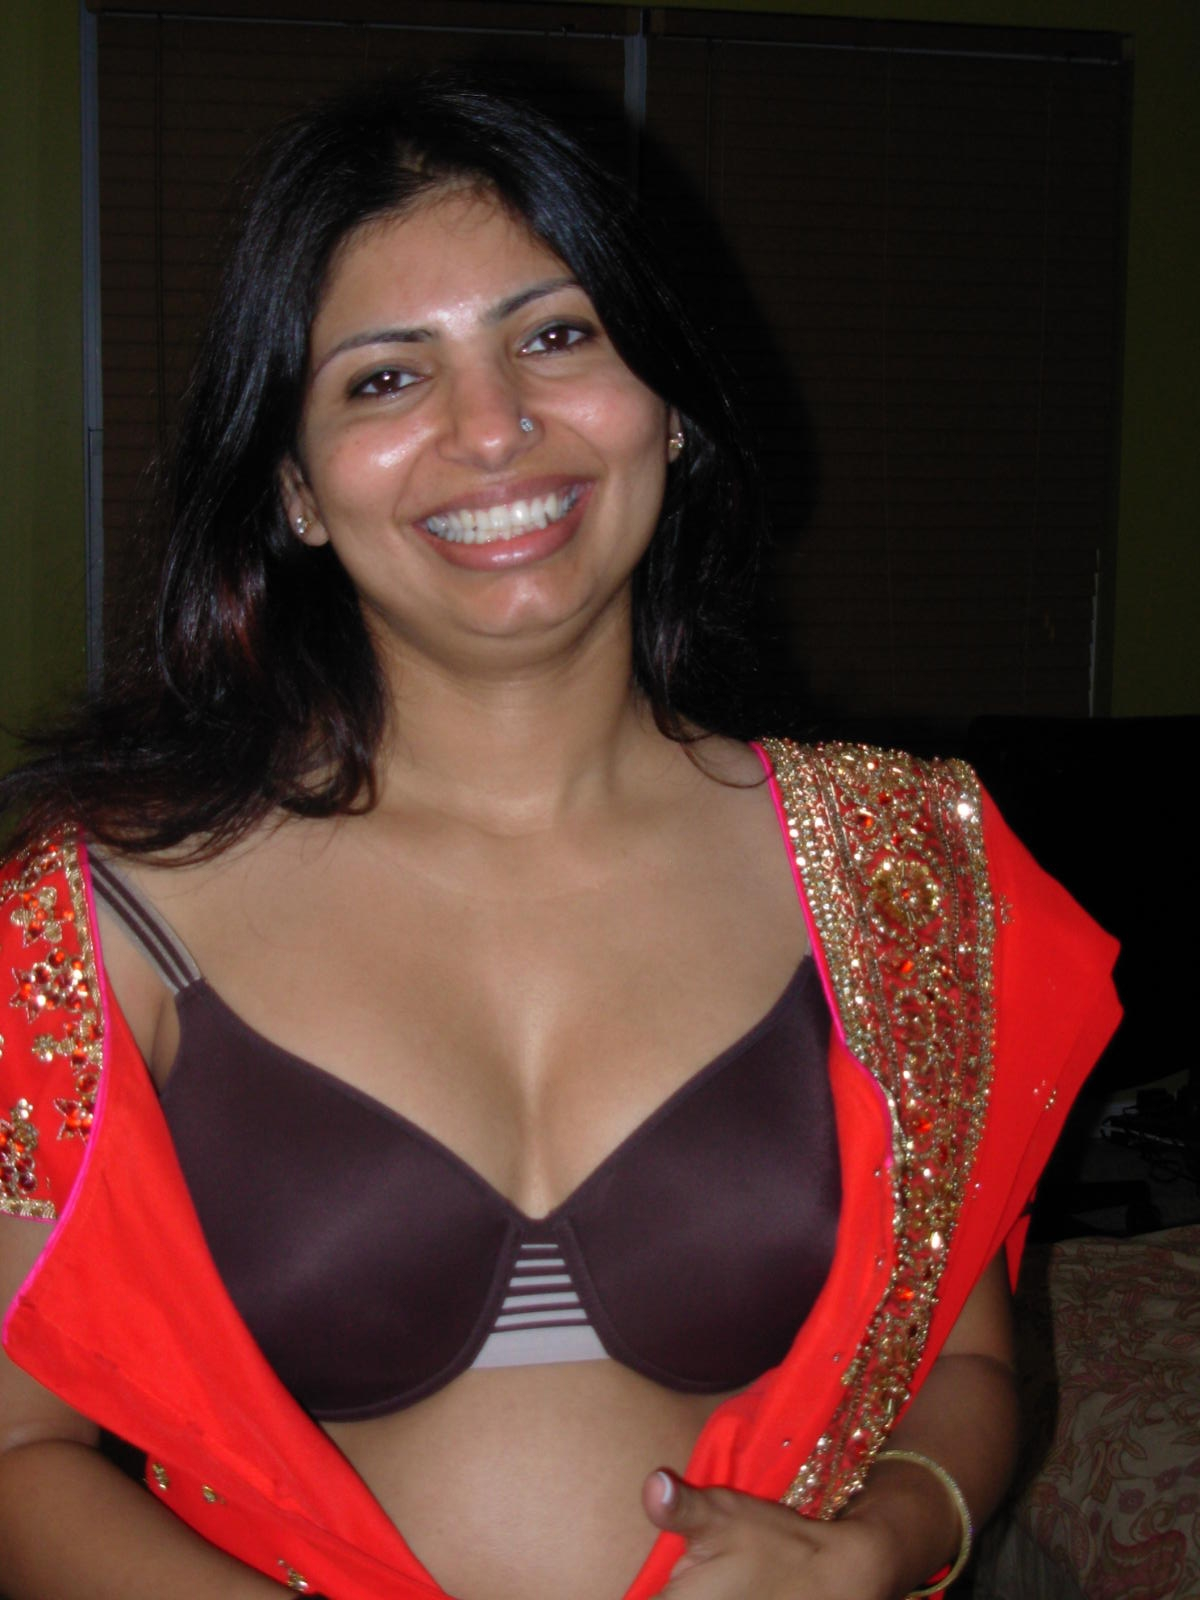 adult pakistani girl images